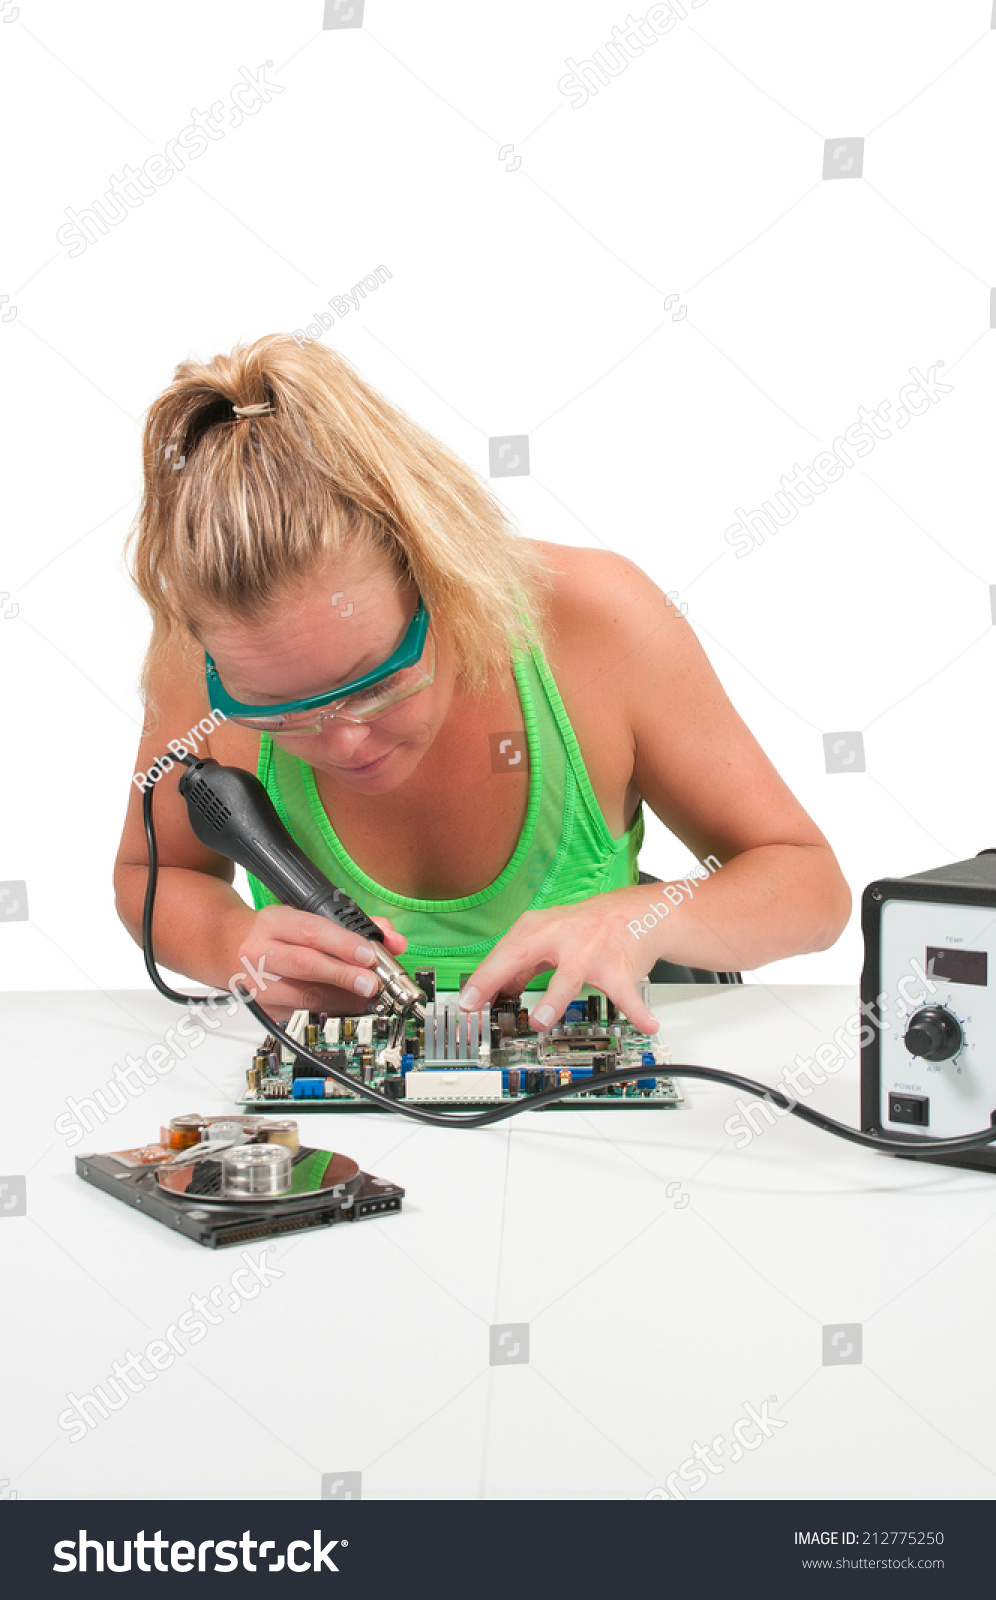 http://image.shutterstock.com/z/stock-photo-beautiful-woman-repairing-a-printed-circuit-board-with-a-forced-air-soldering-iron-212775250.jpg